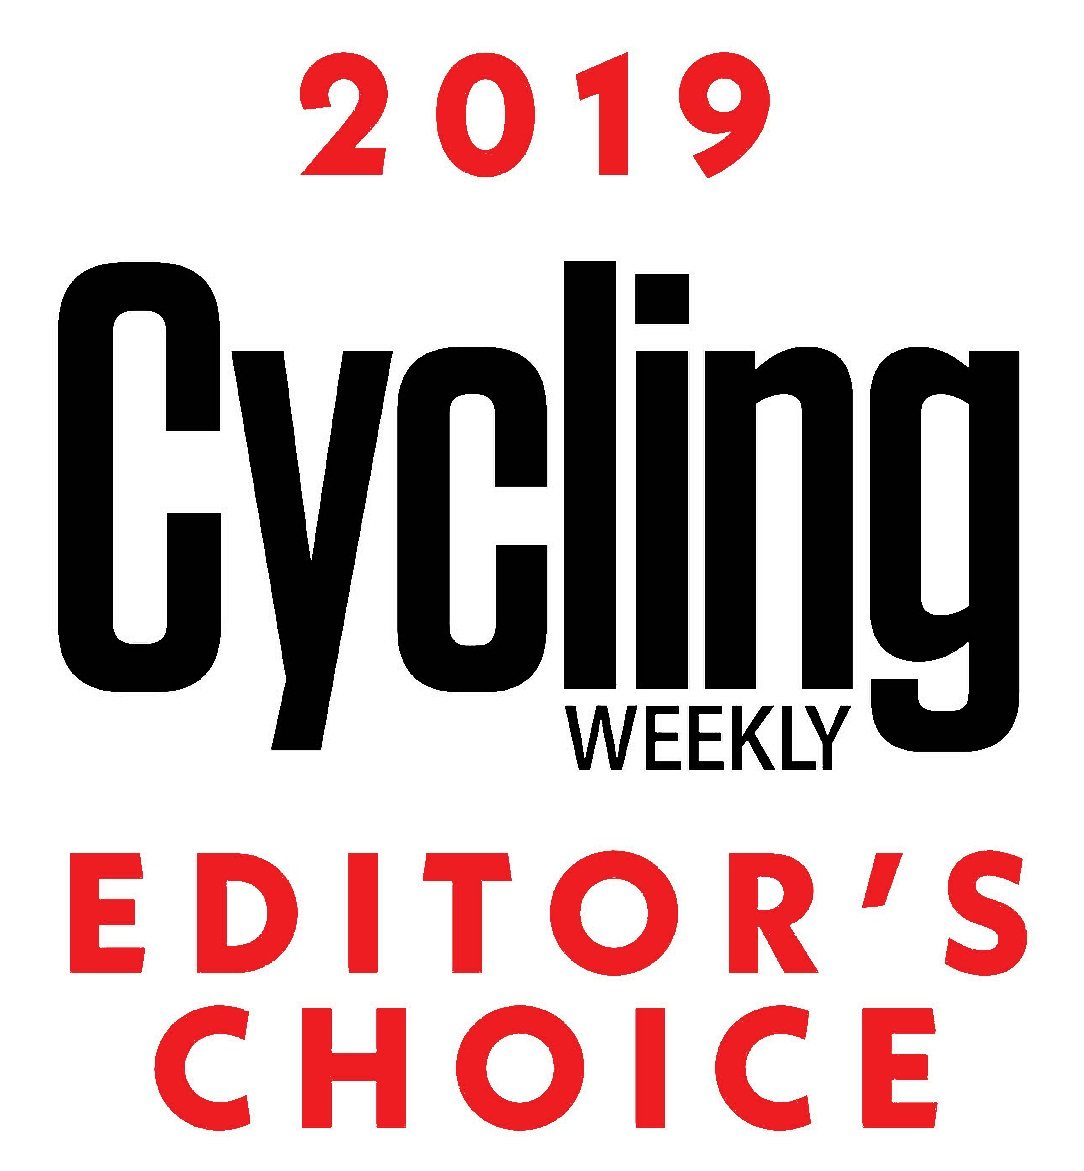 Cycling Weekly Editor's Choice